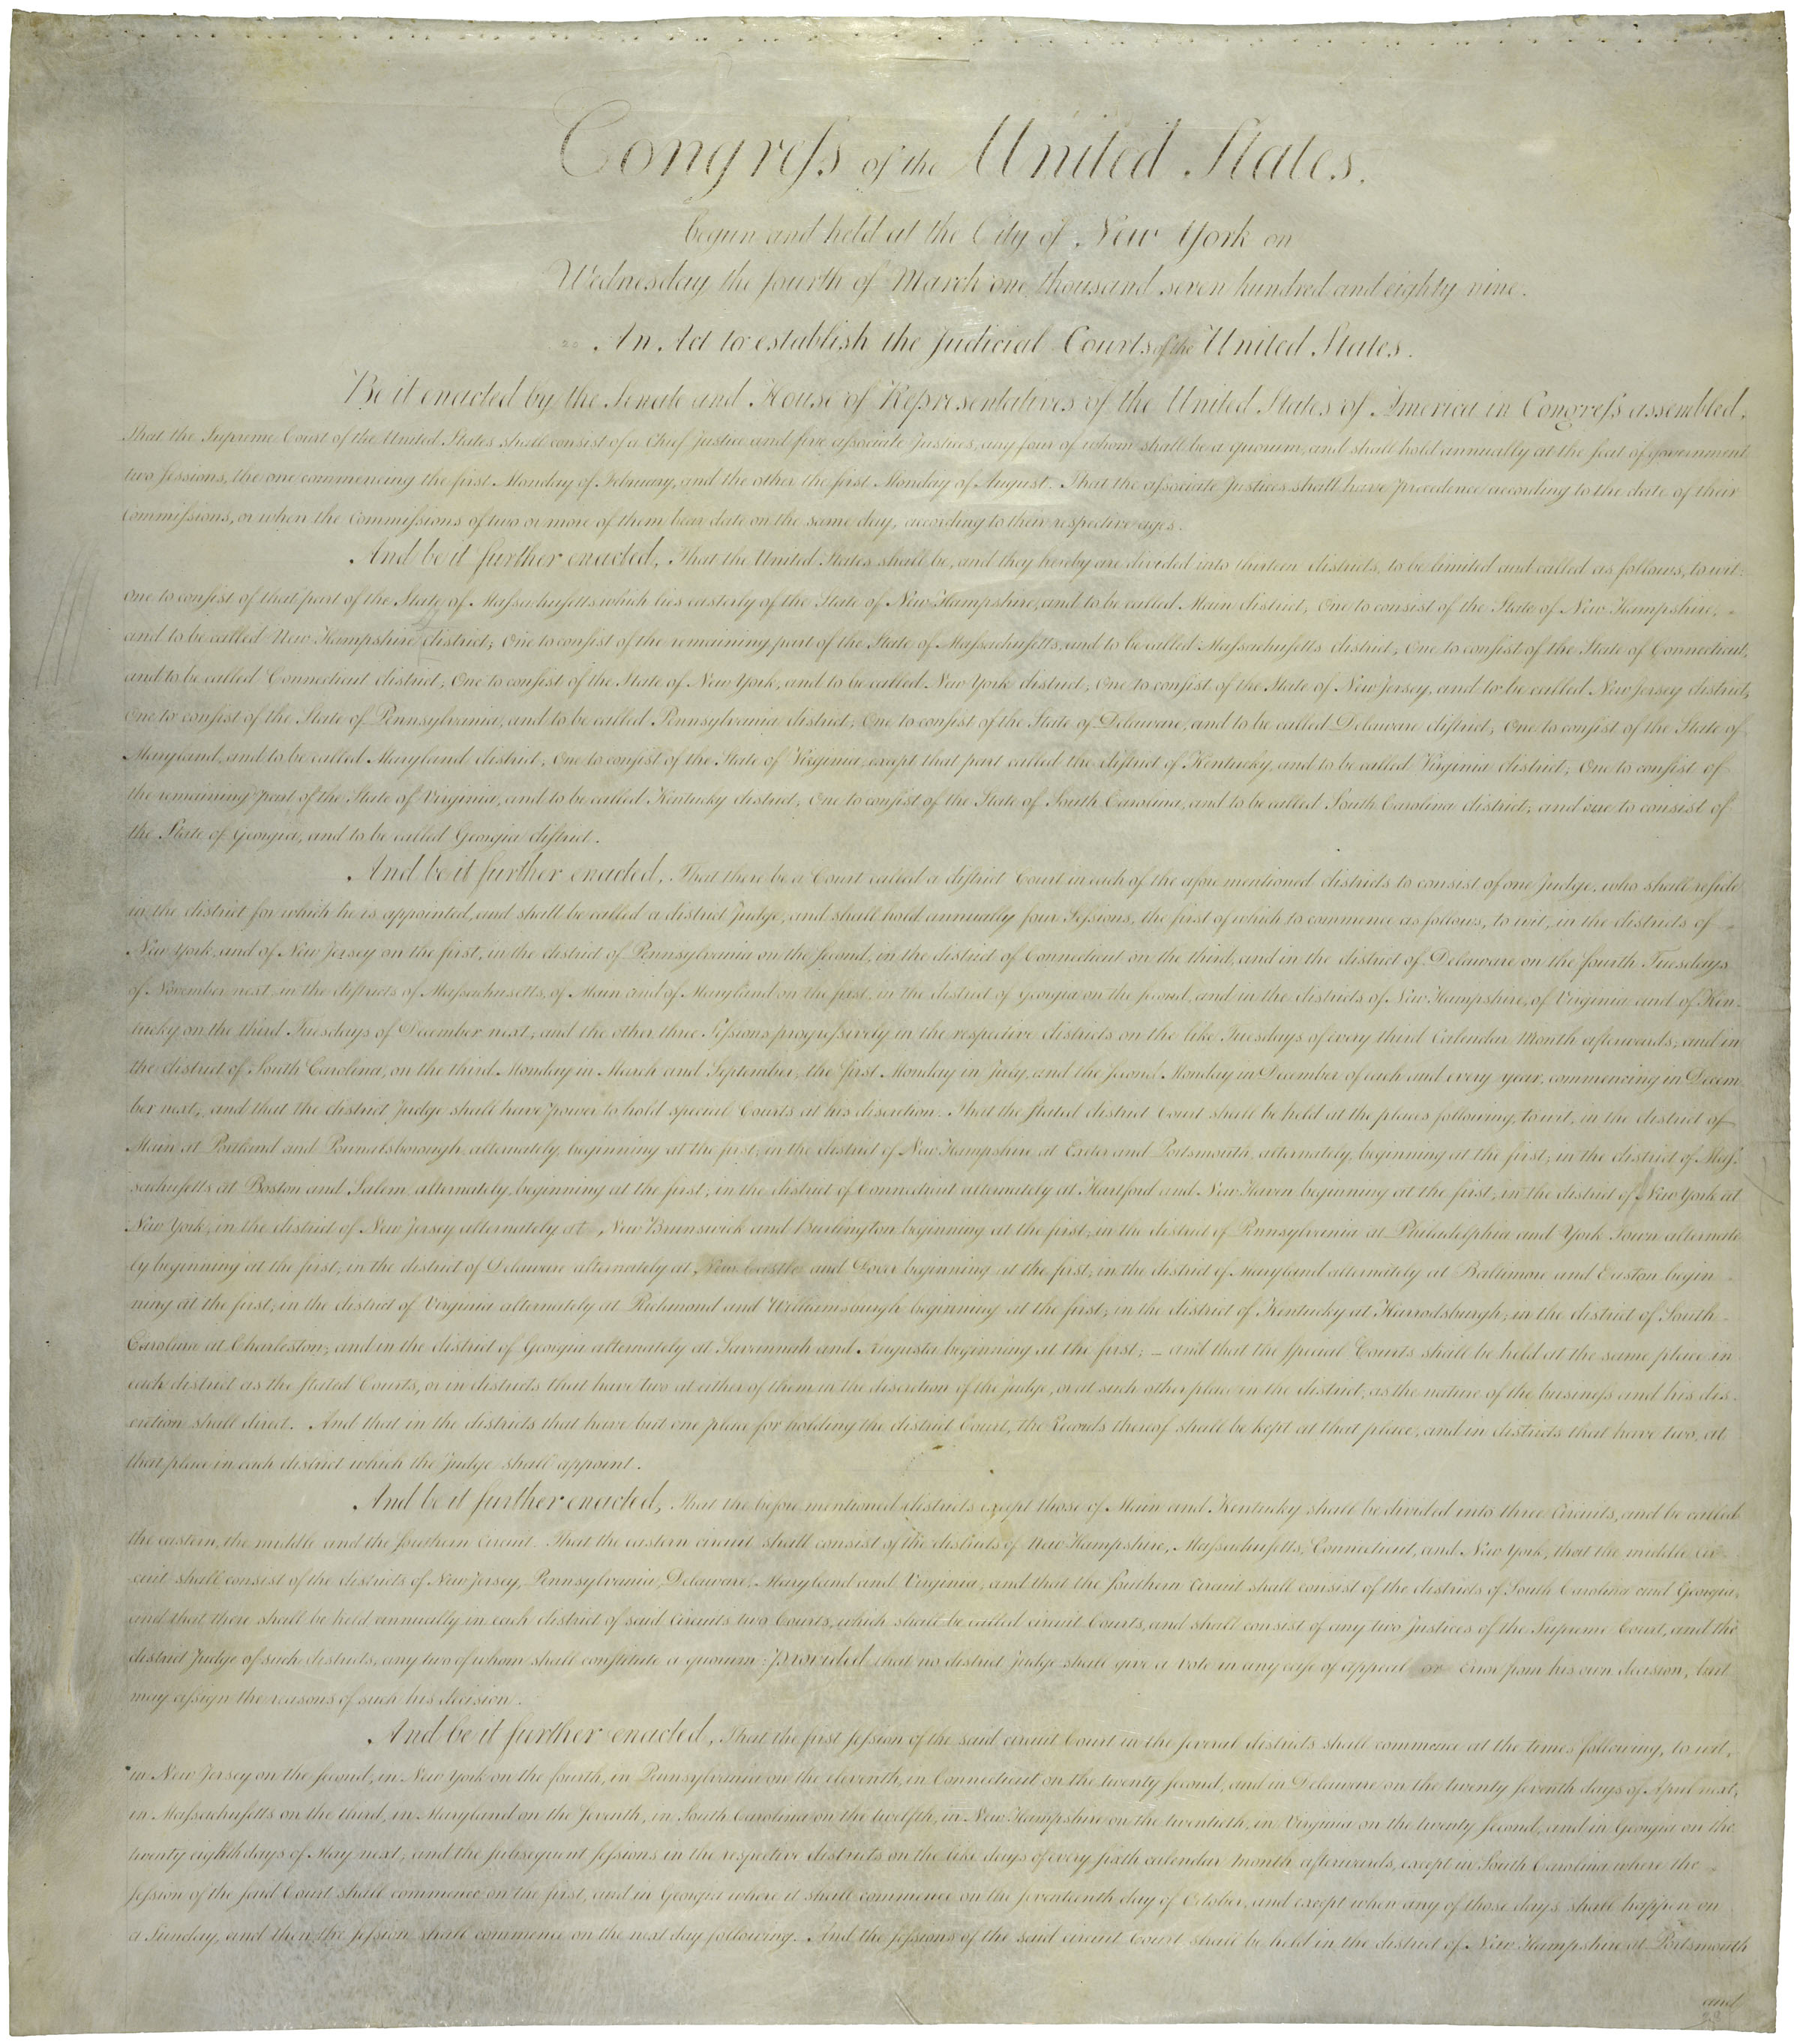 An Act to Establish the Federal Courts of the United States, 09/24/1789. (National Archives Identifier 1501550)